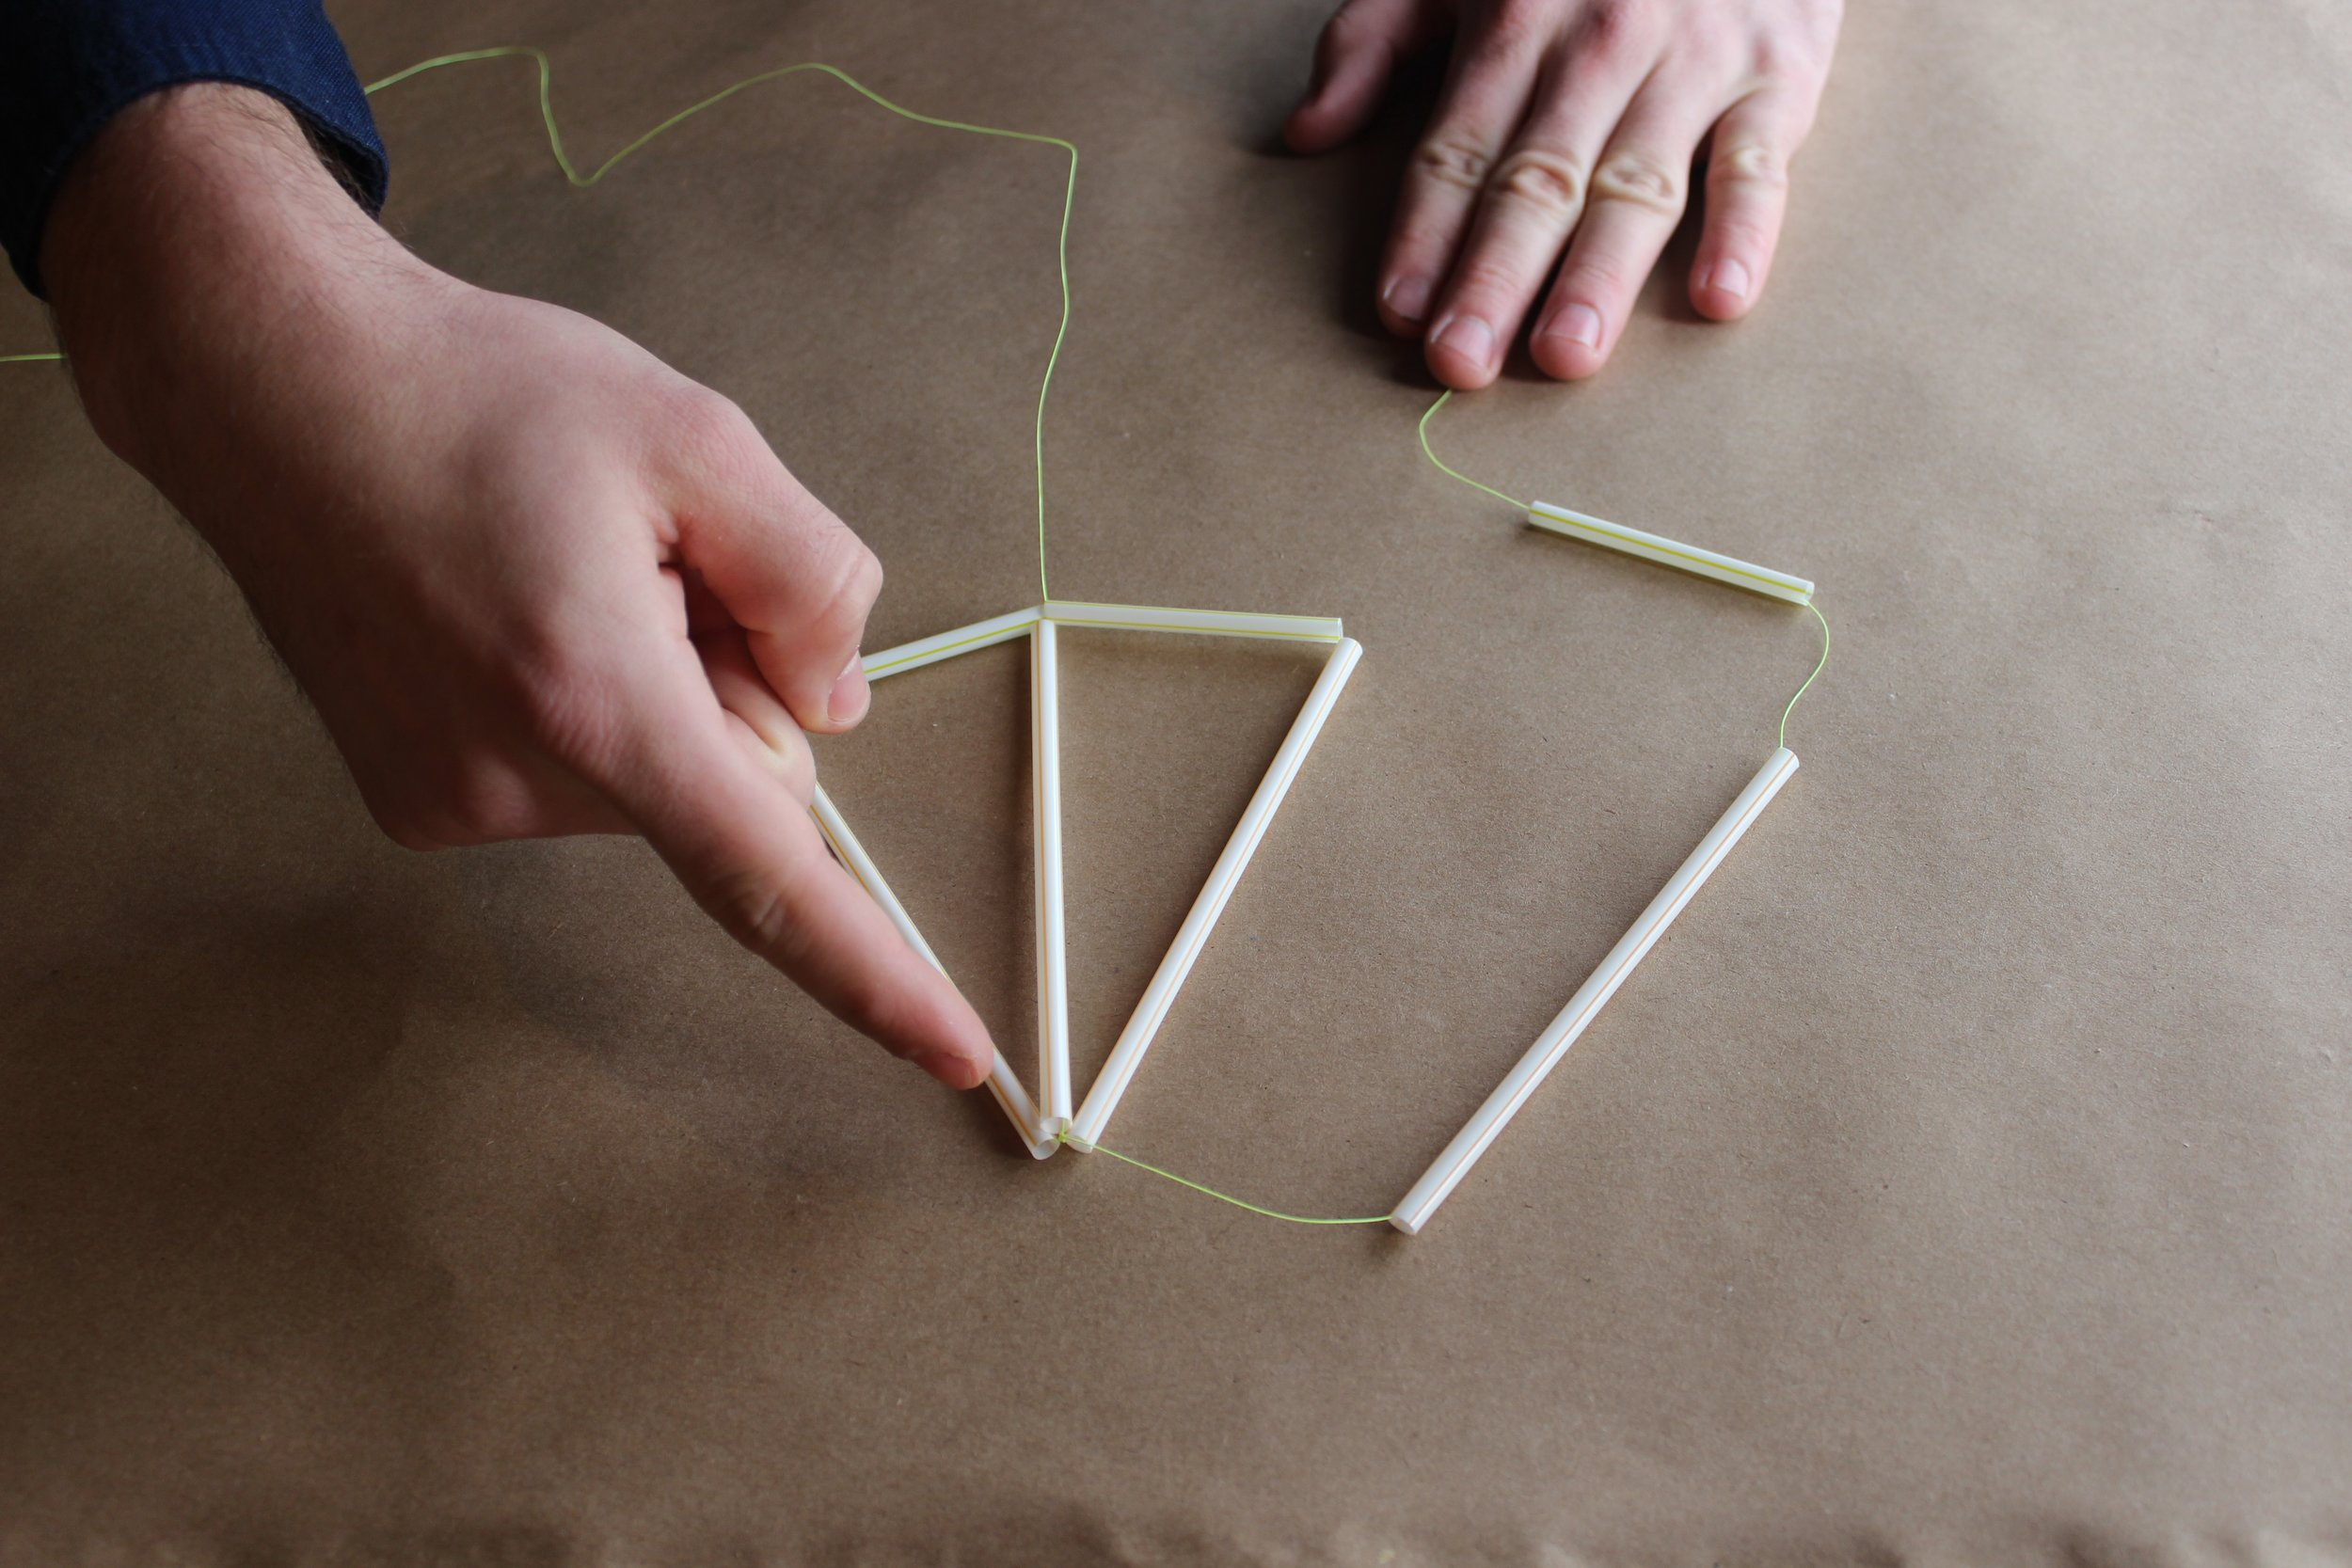 Step 5.) Using the string coming out of the top, connect it to another 5 inch piece then another 2.5 inch piece. Connect them to create your third triangle and tie it off at the bottom.